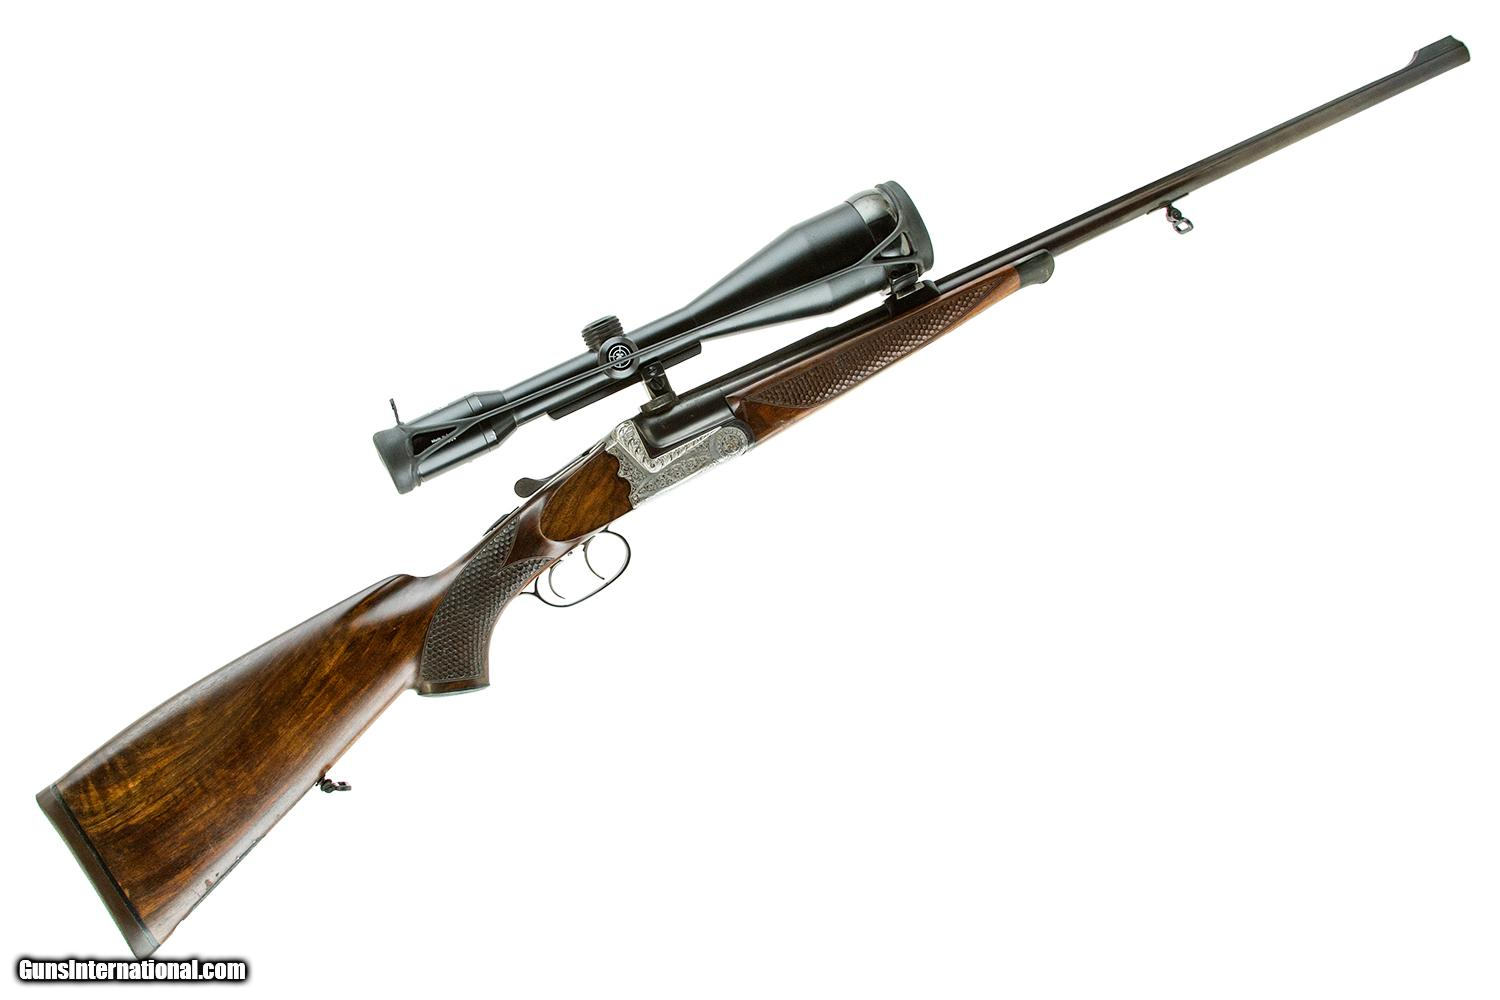 dating rifles Markings on japanese arisaka rifles and bayonets of world war ii the japanese manufactured over 64 million rifles and carbines in the 40 years from 1906 to 1945.